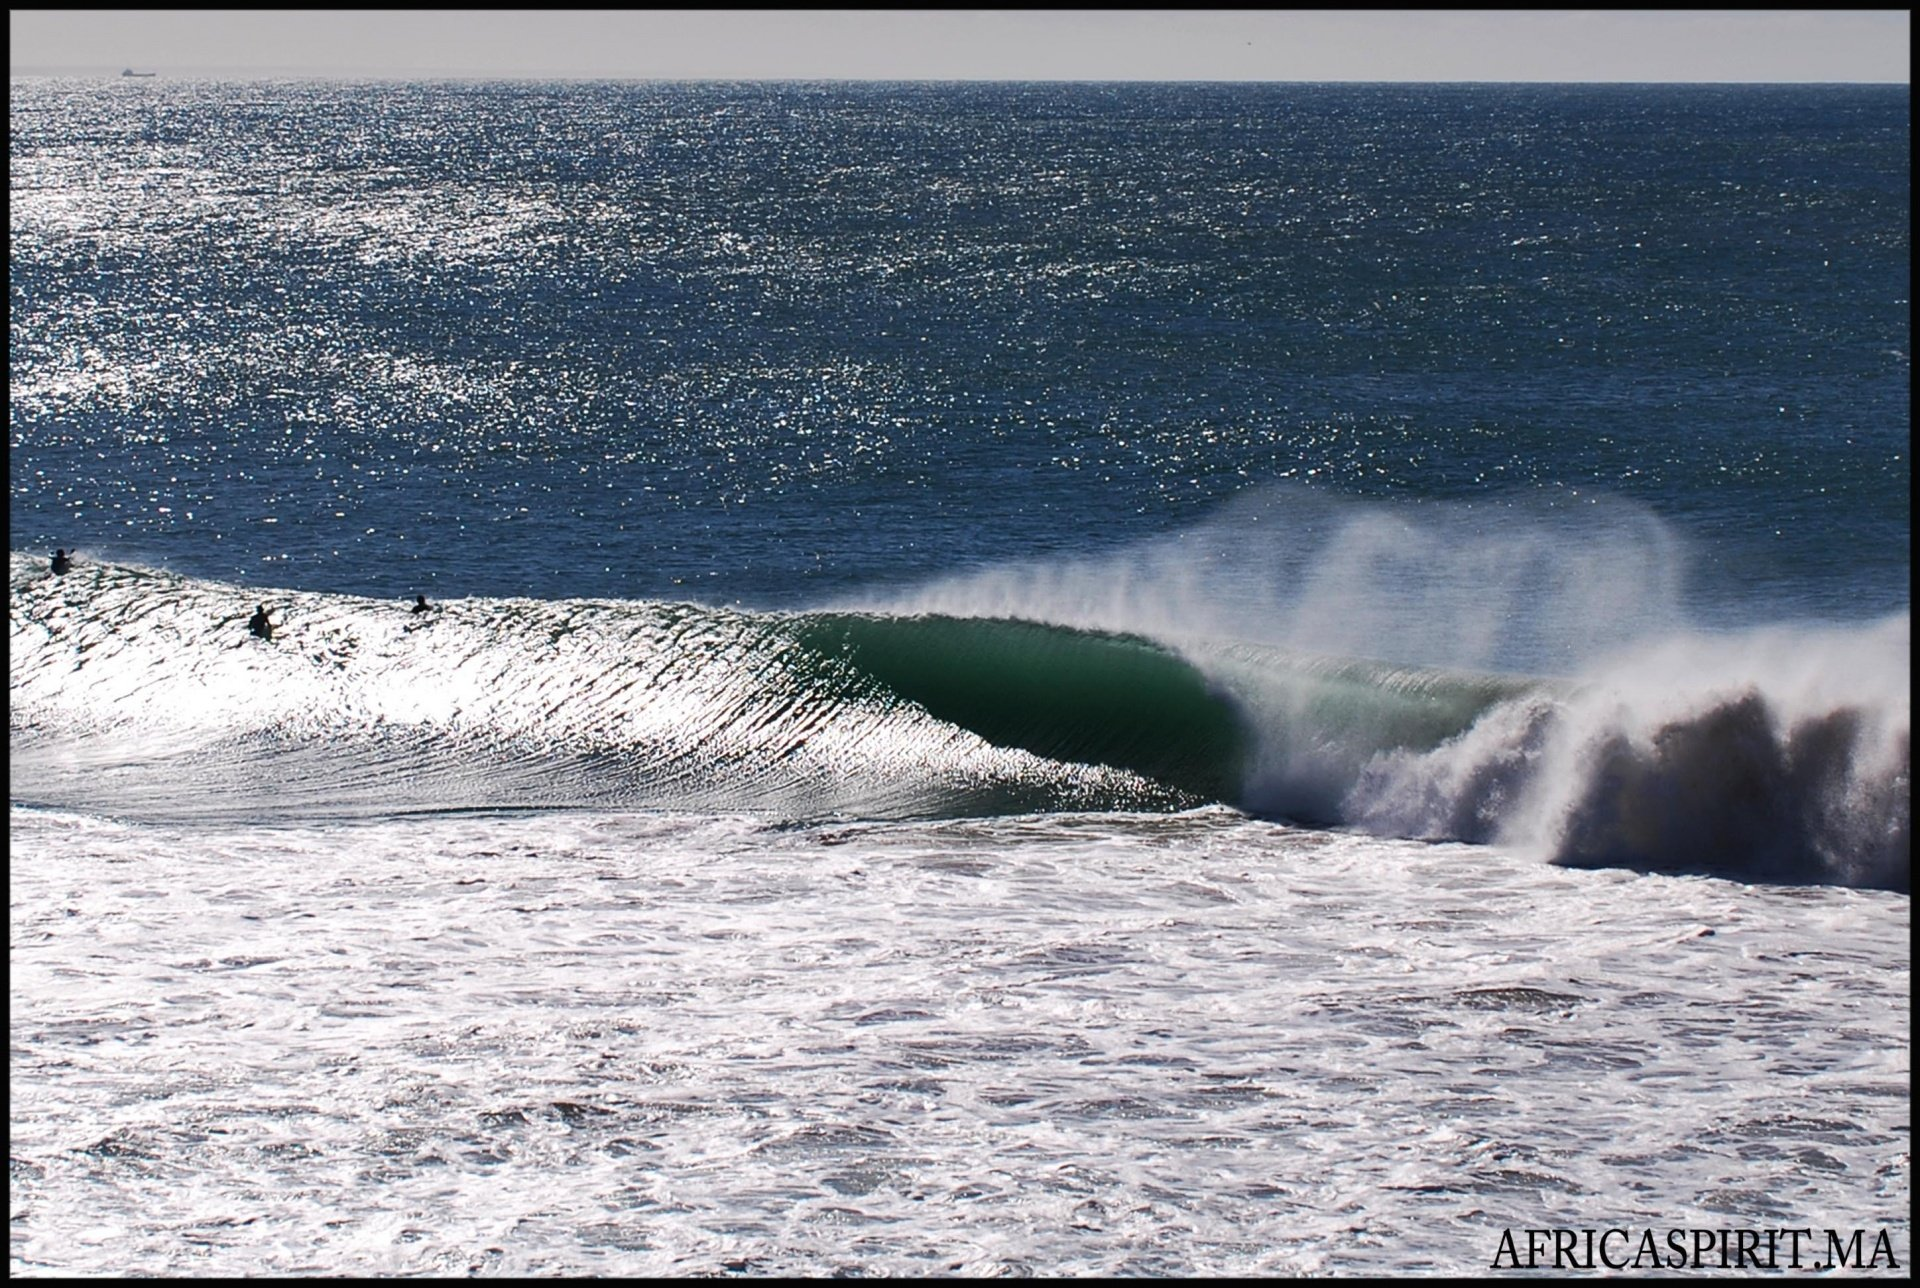 Africaspirit surf house's photo of Anchor Point